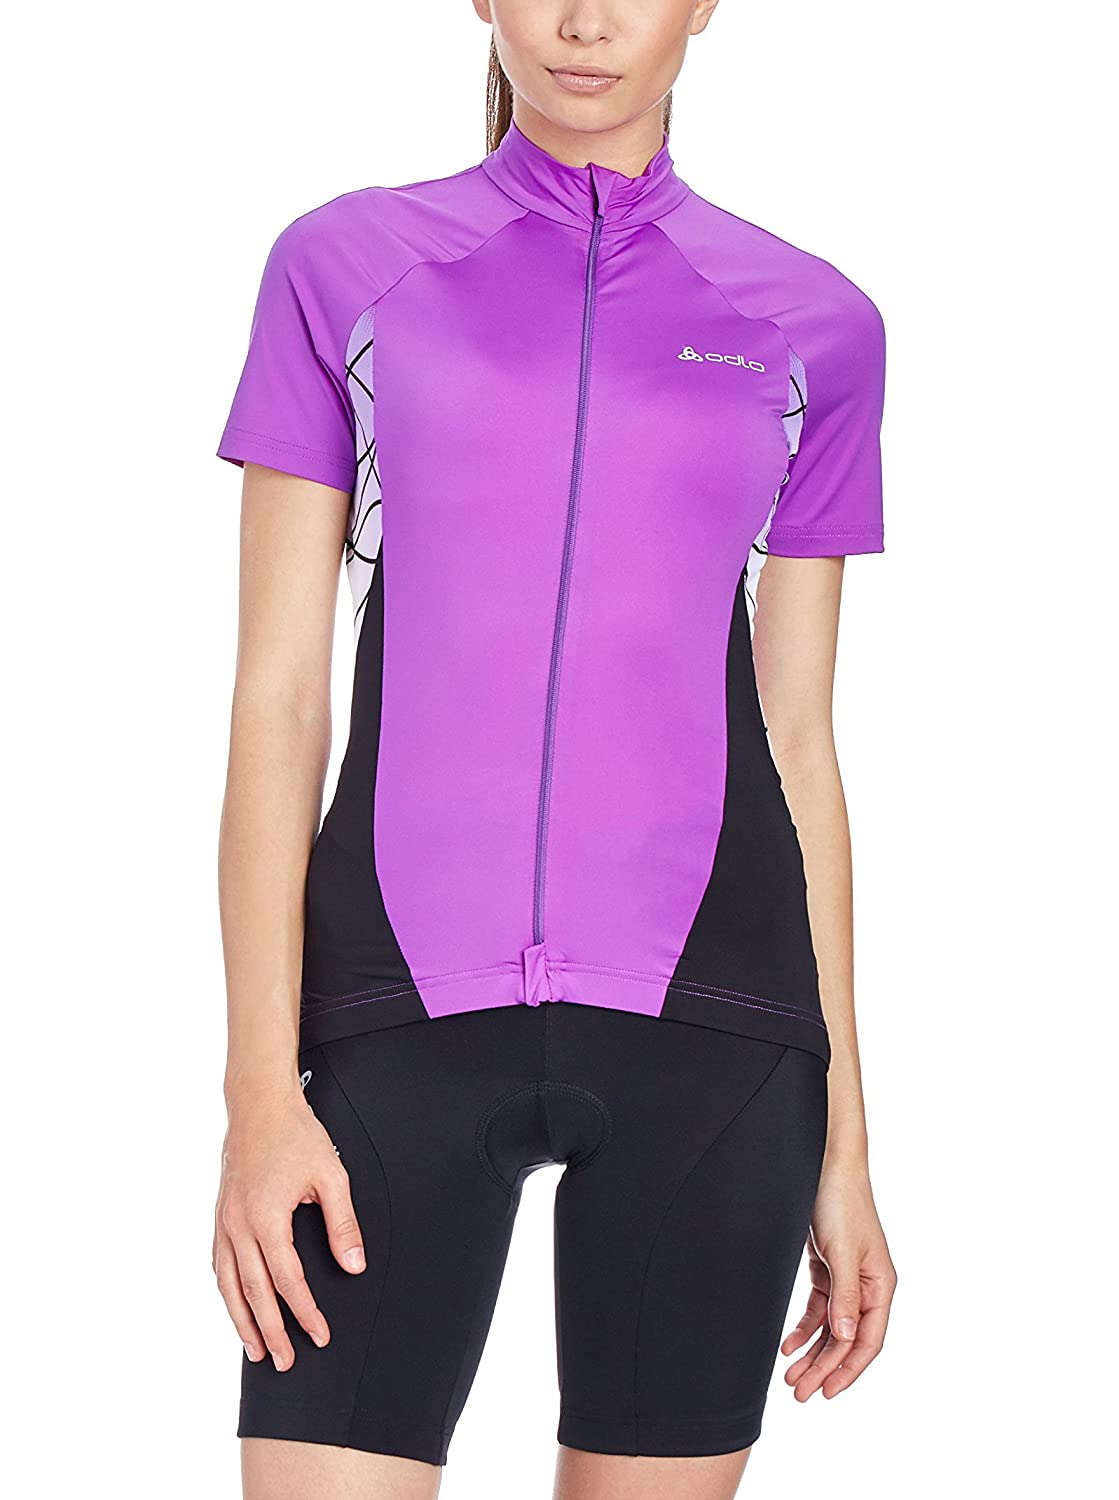 Odlo Tarmac Stand-up collar S S full zip Damens violet-schwarz